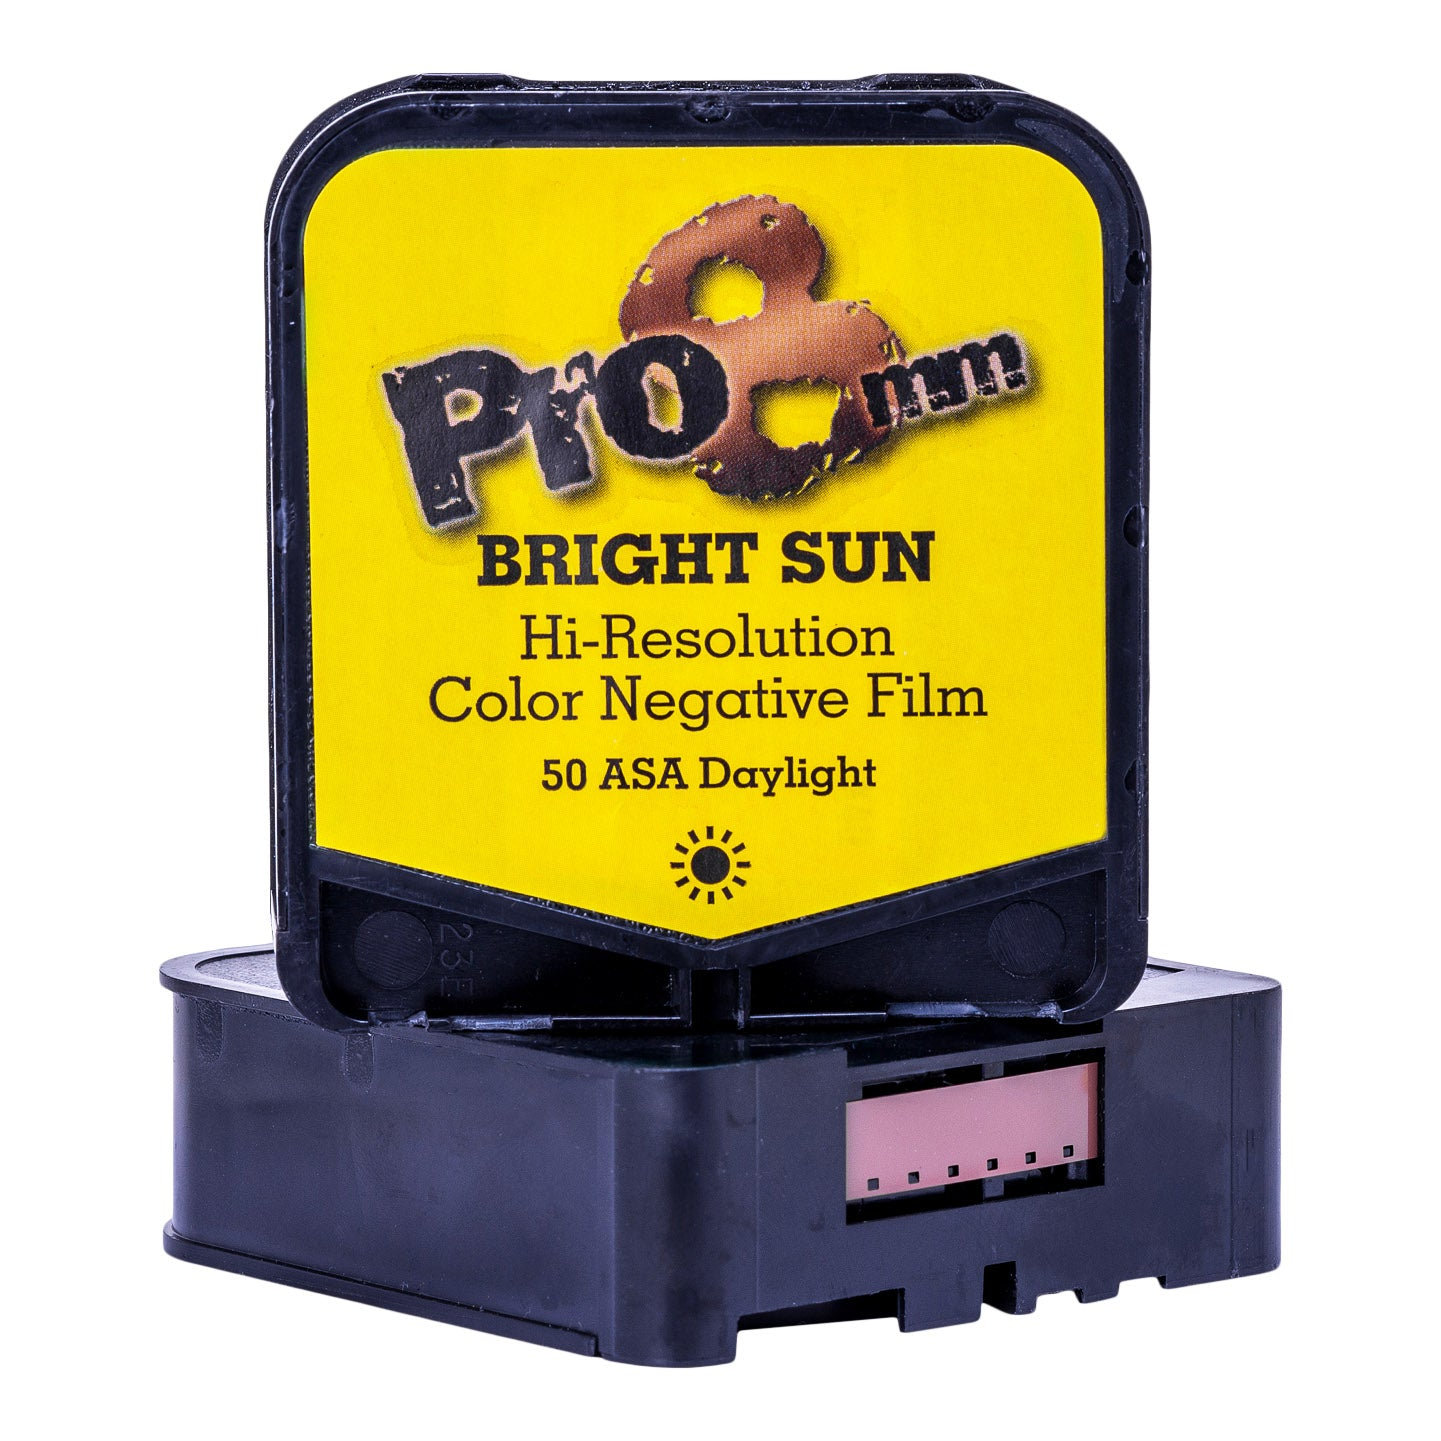 Super 8 Film Kit